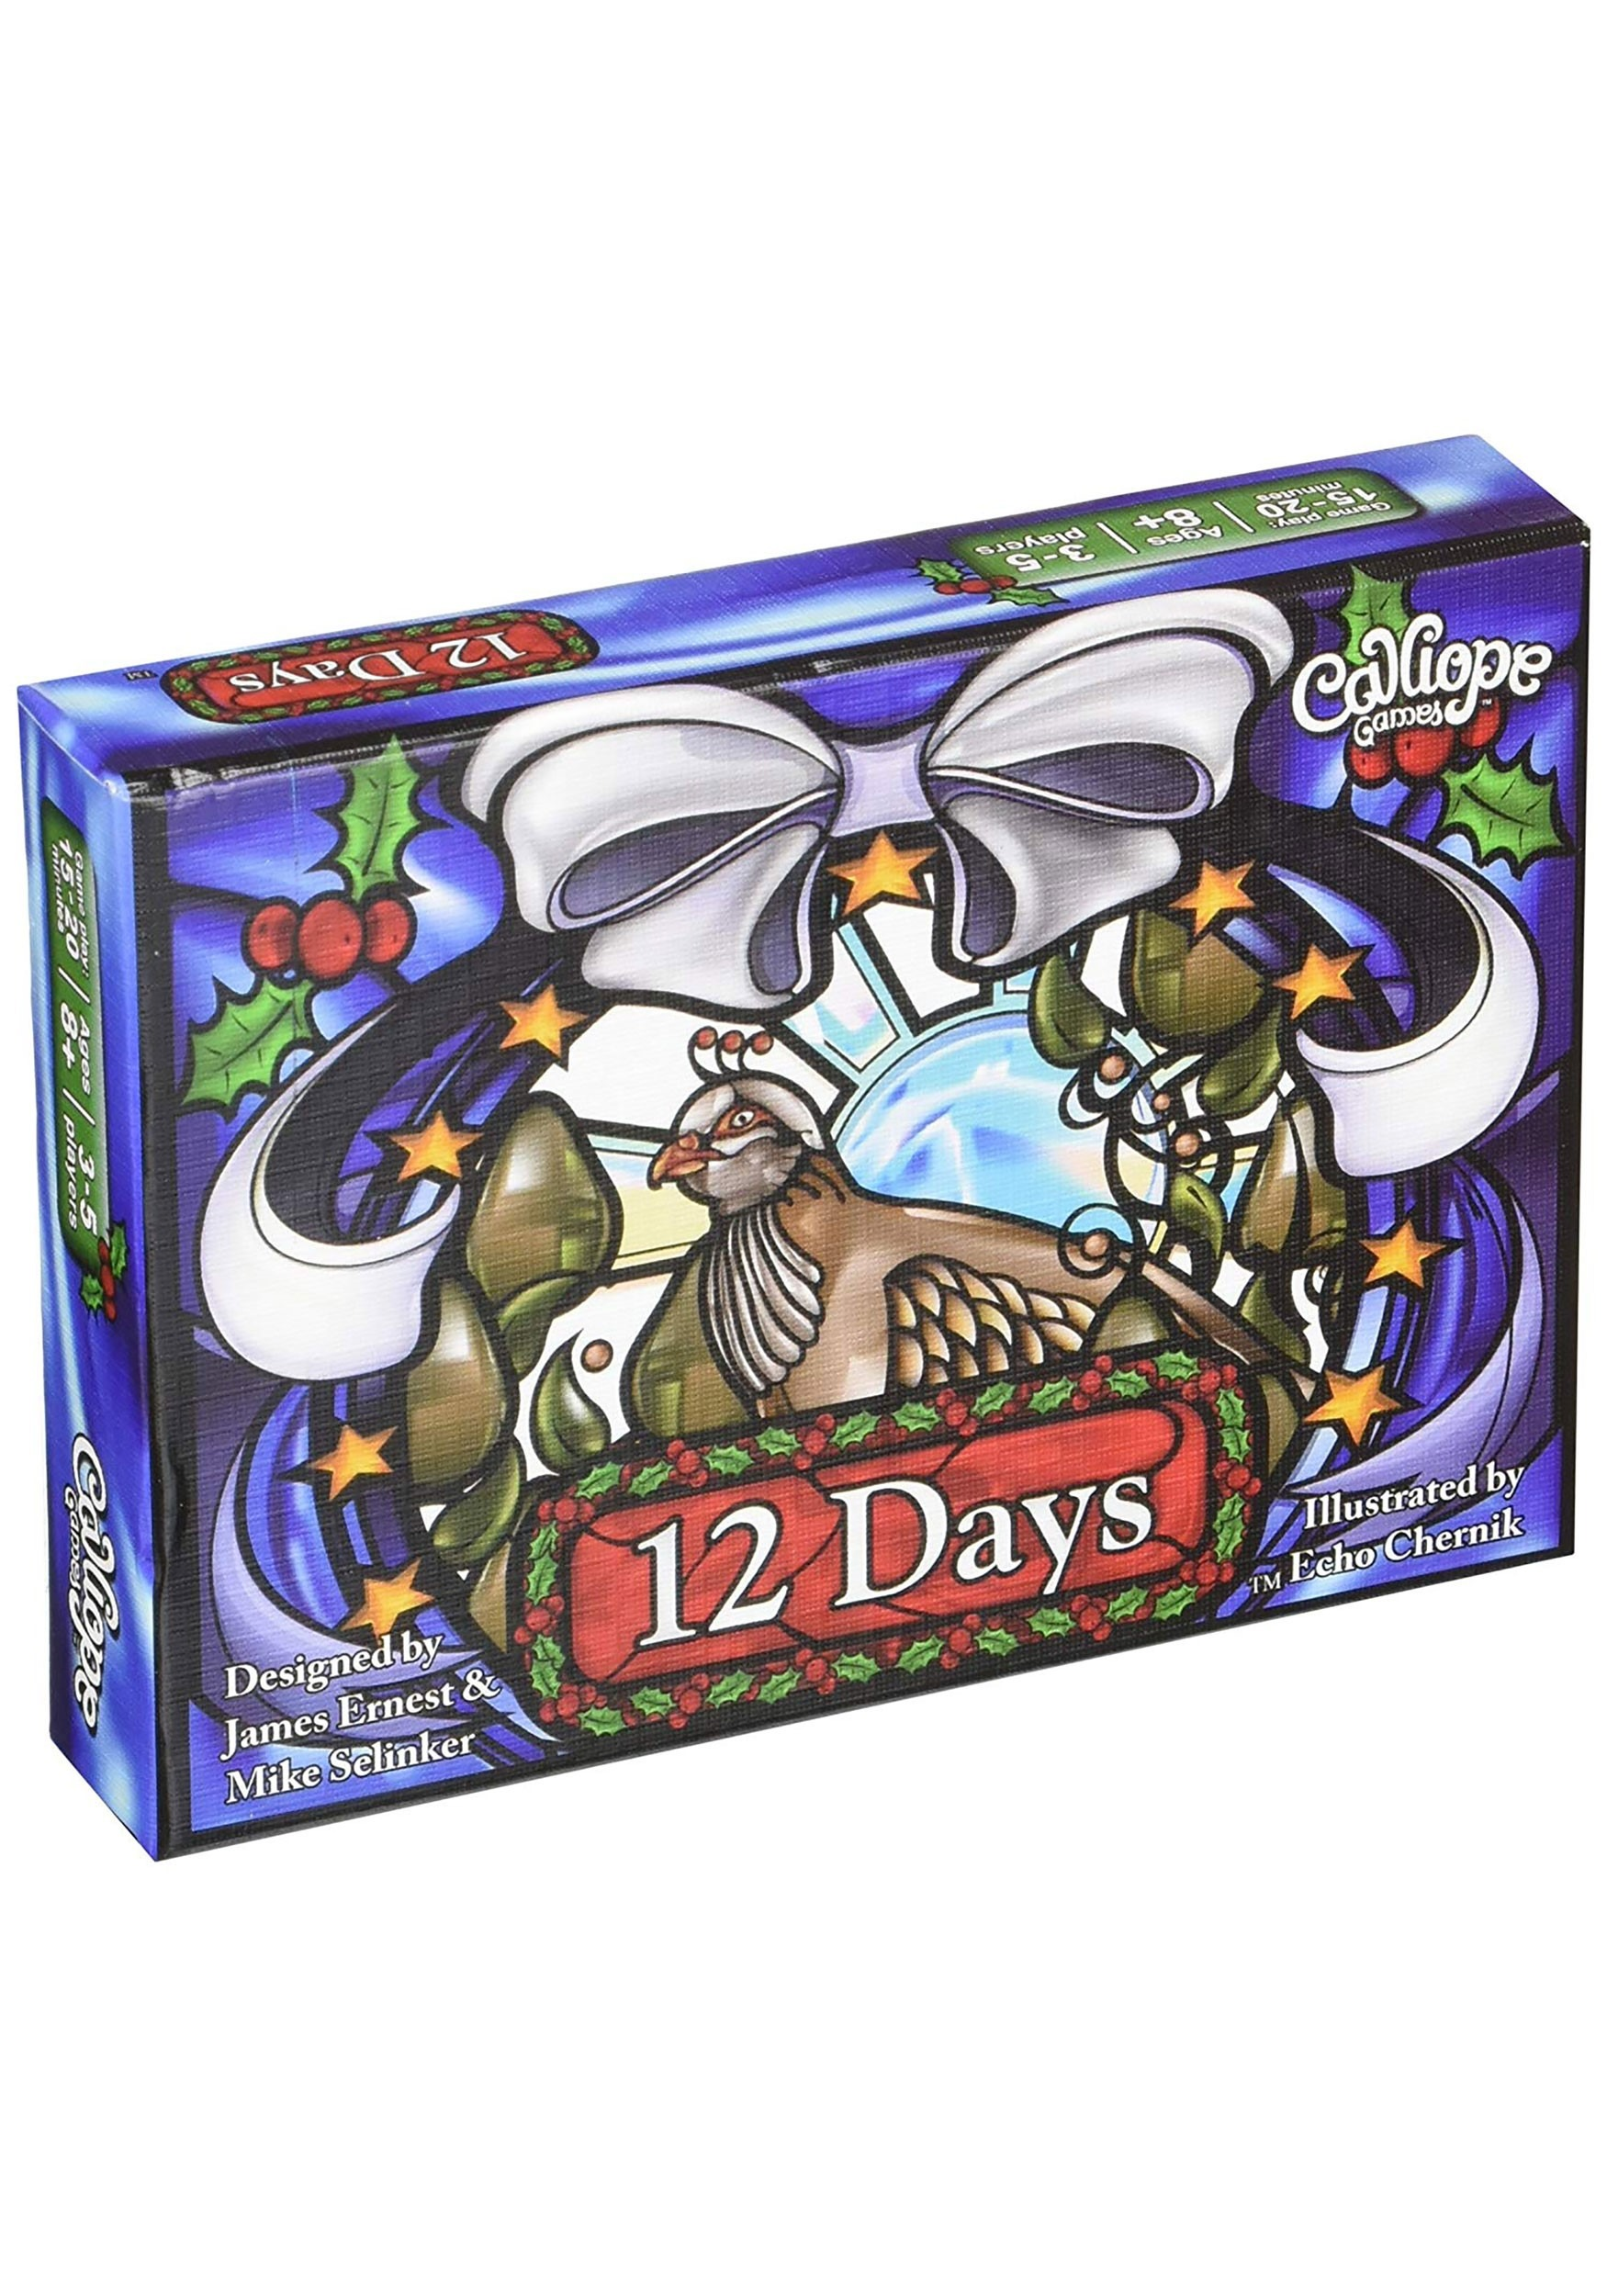 12 Days Card Game for Christmas